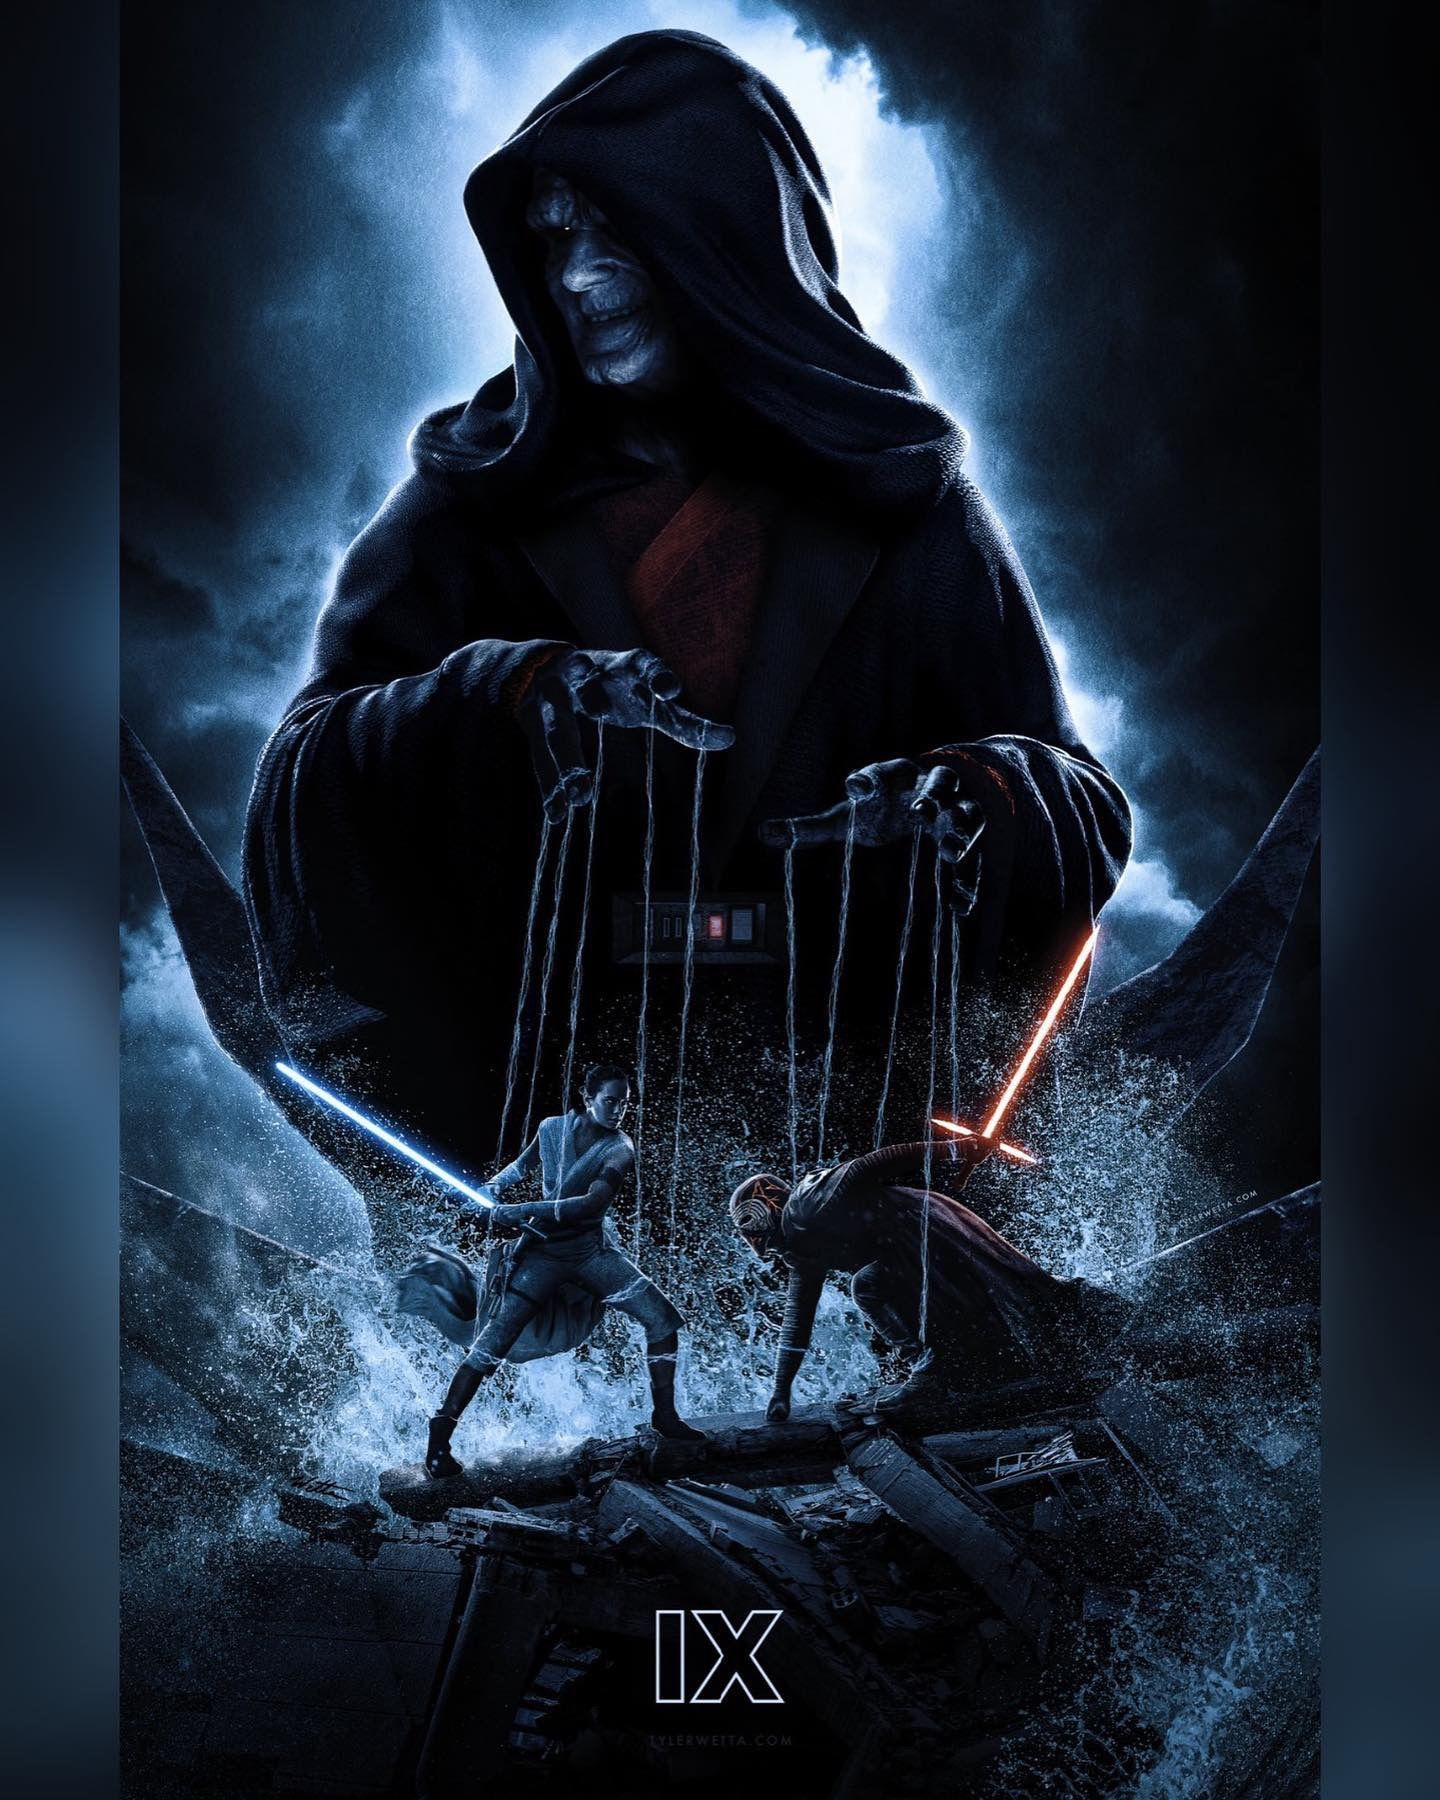 Palpatine Puppet Master The Rise Of Skywalker In 2020 Star Wars Movies Posters Star Wars Images Star Wars Poster